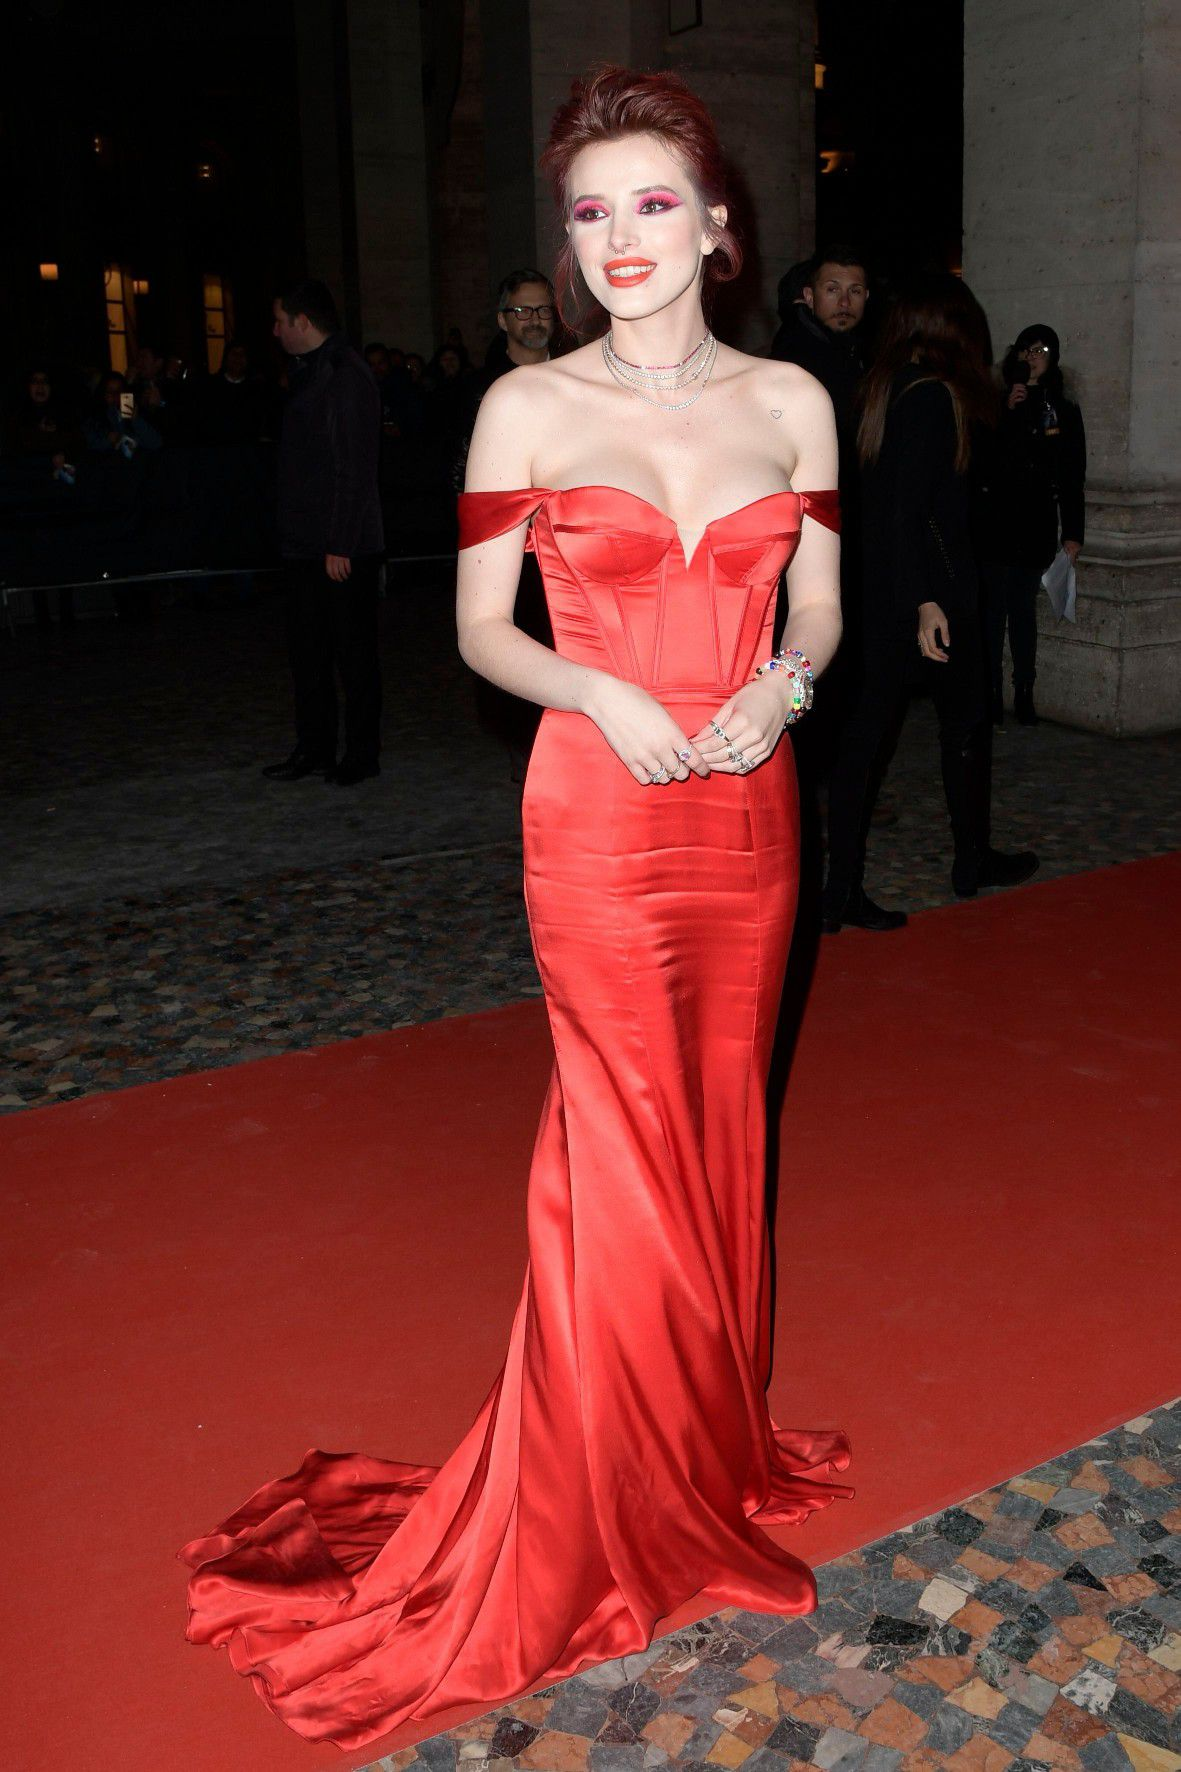 bella-thorne-deep-cleavage-at-midnight-run-premiere-in-rome-3812